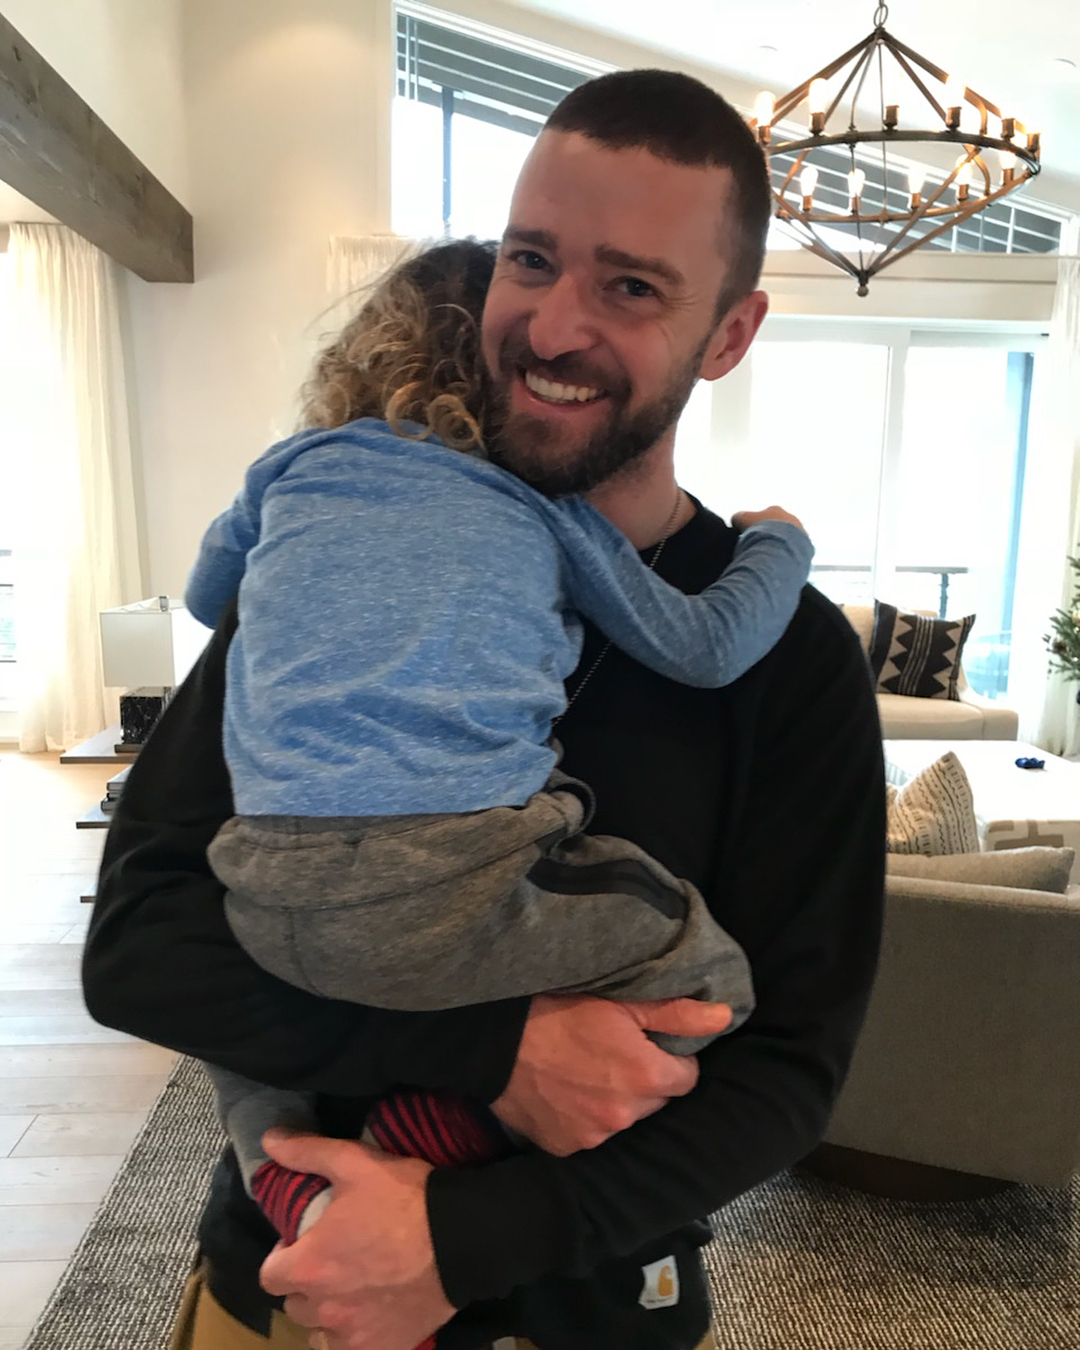 15 Pictures Of The Celebrity Dads Of Hollywood Spending Quality Time With Their Little Ones